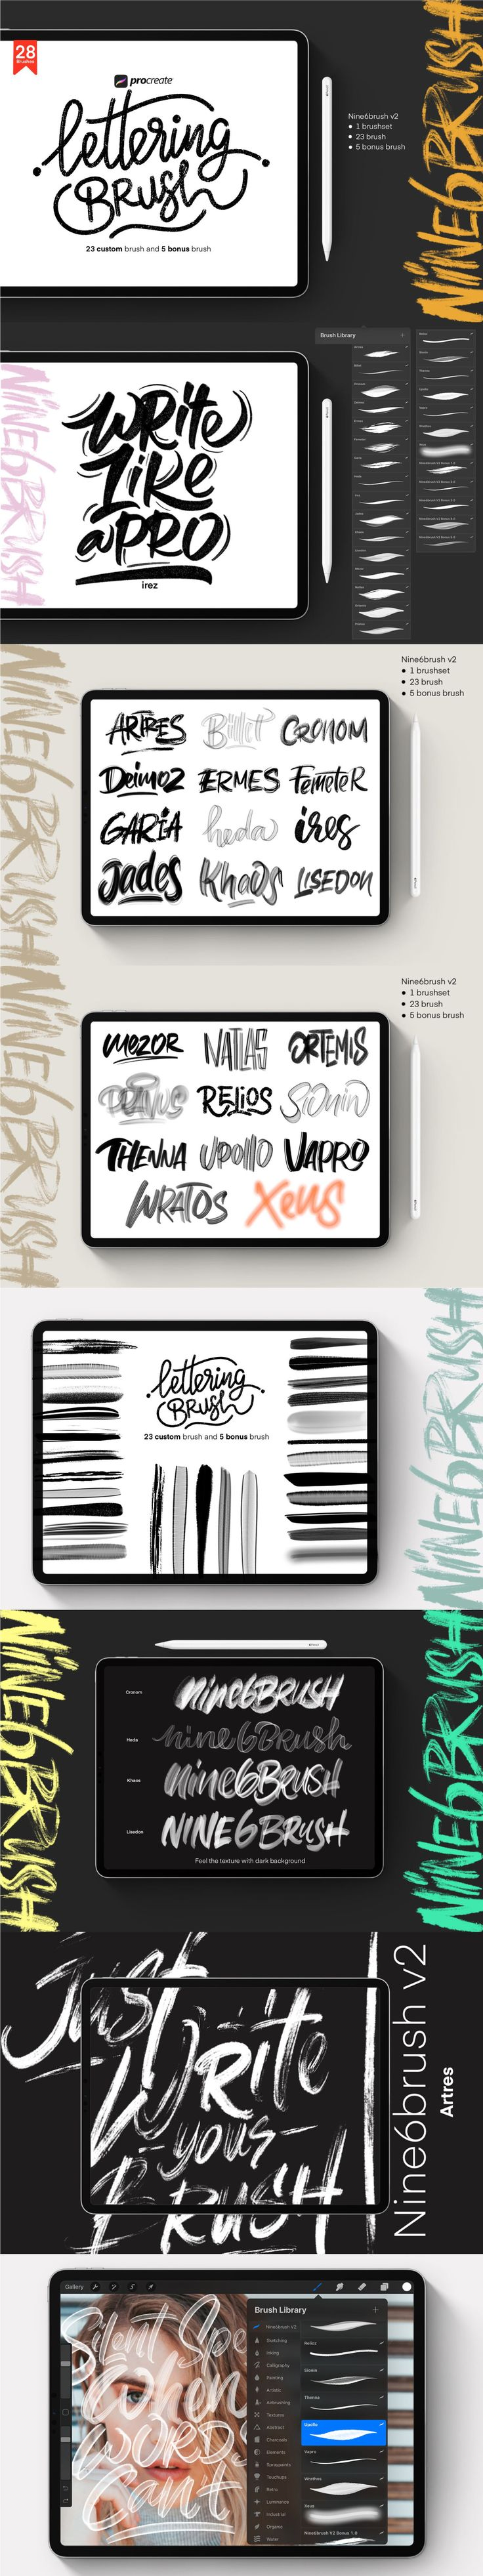 Download FREE PROCREATE LETTERING BRUSHES | Procreate lettering ...